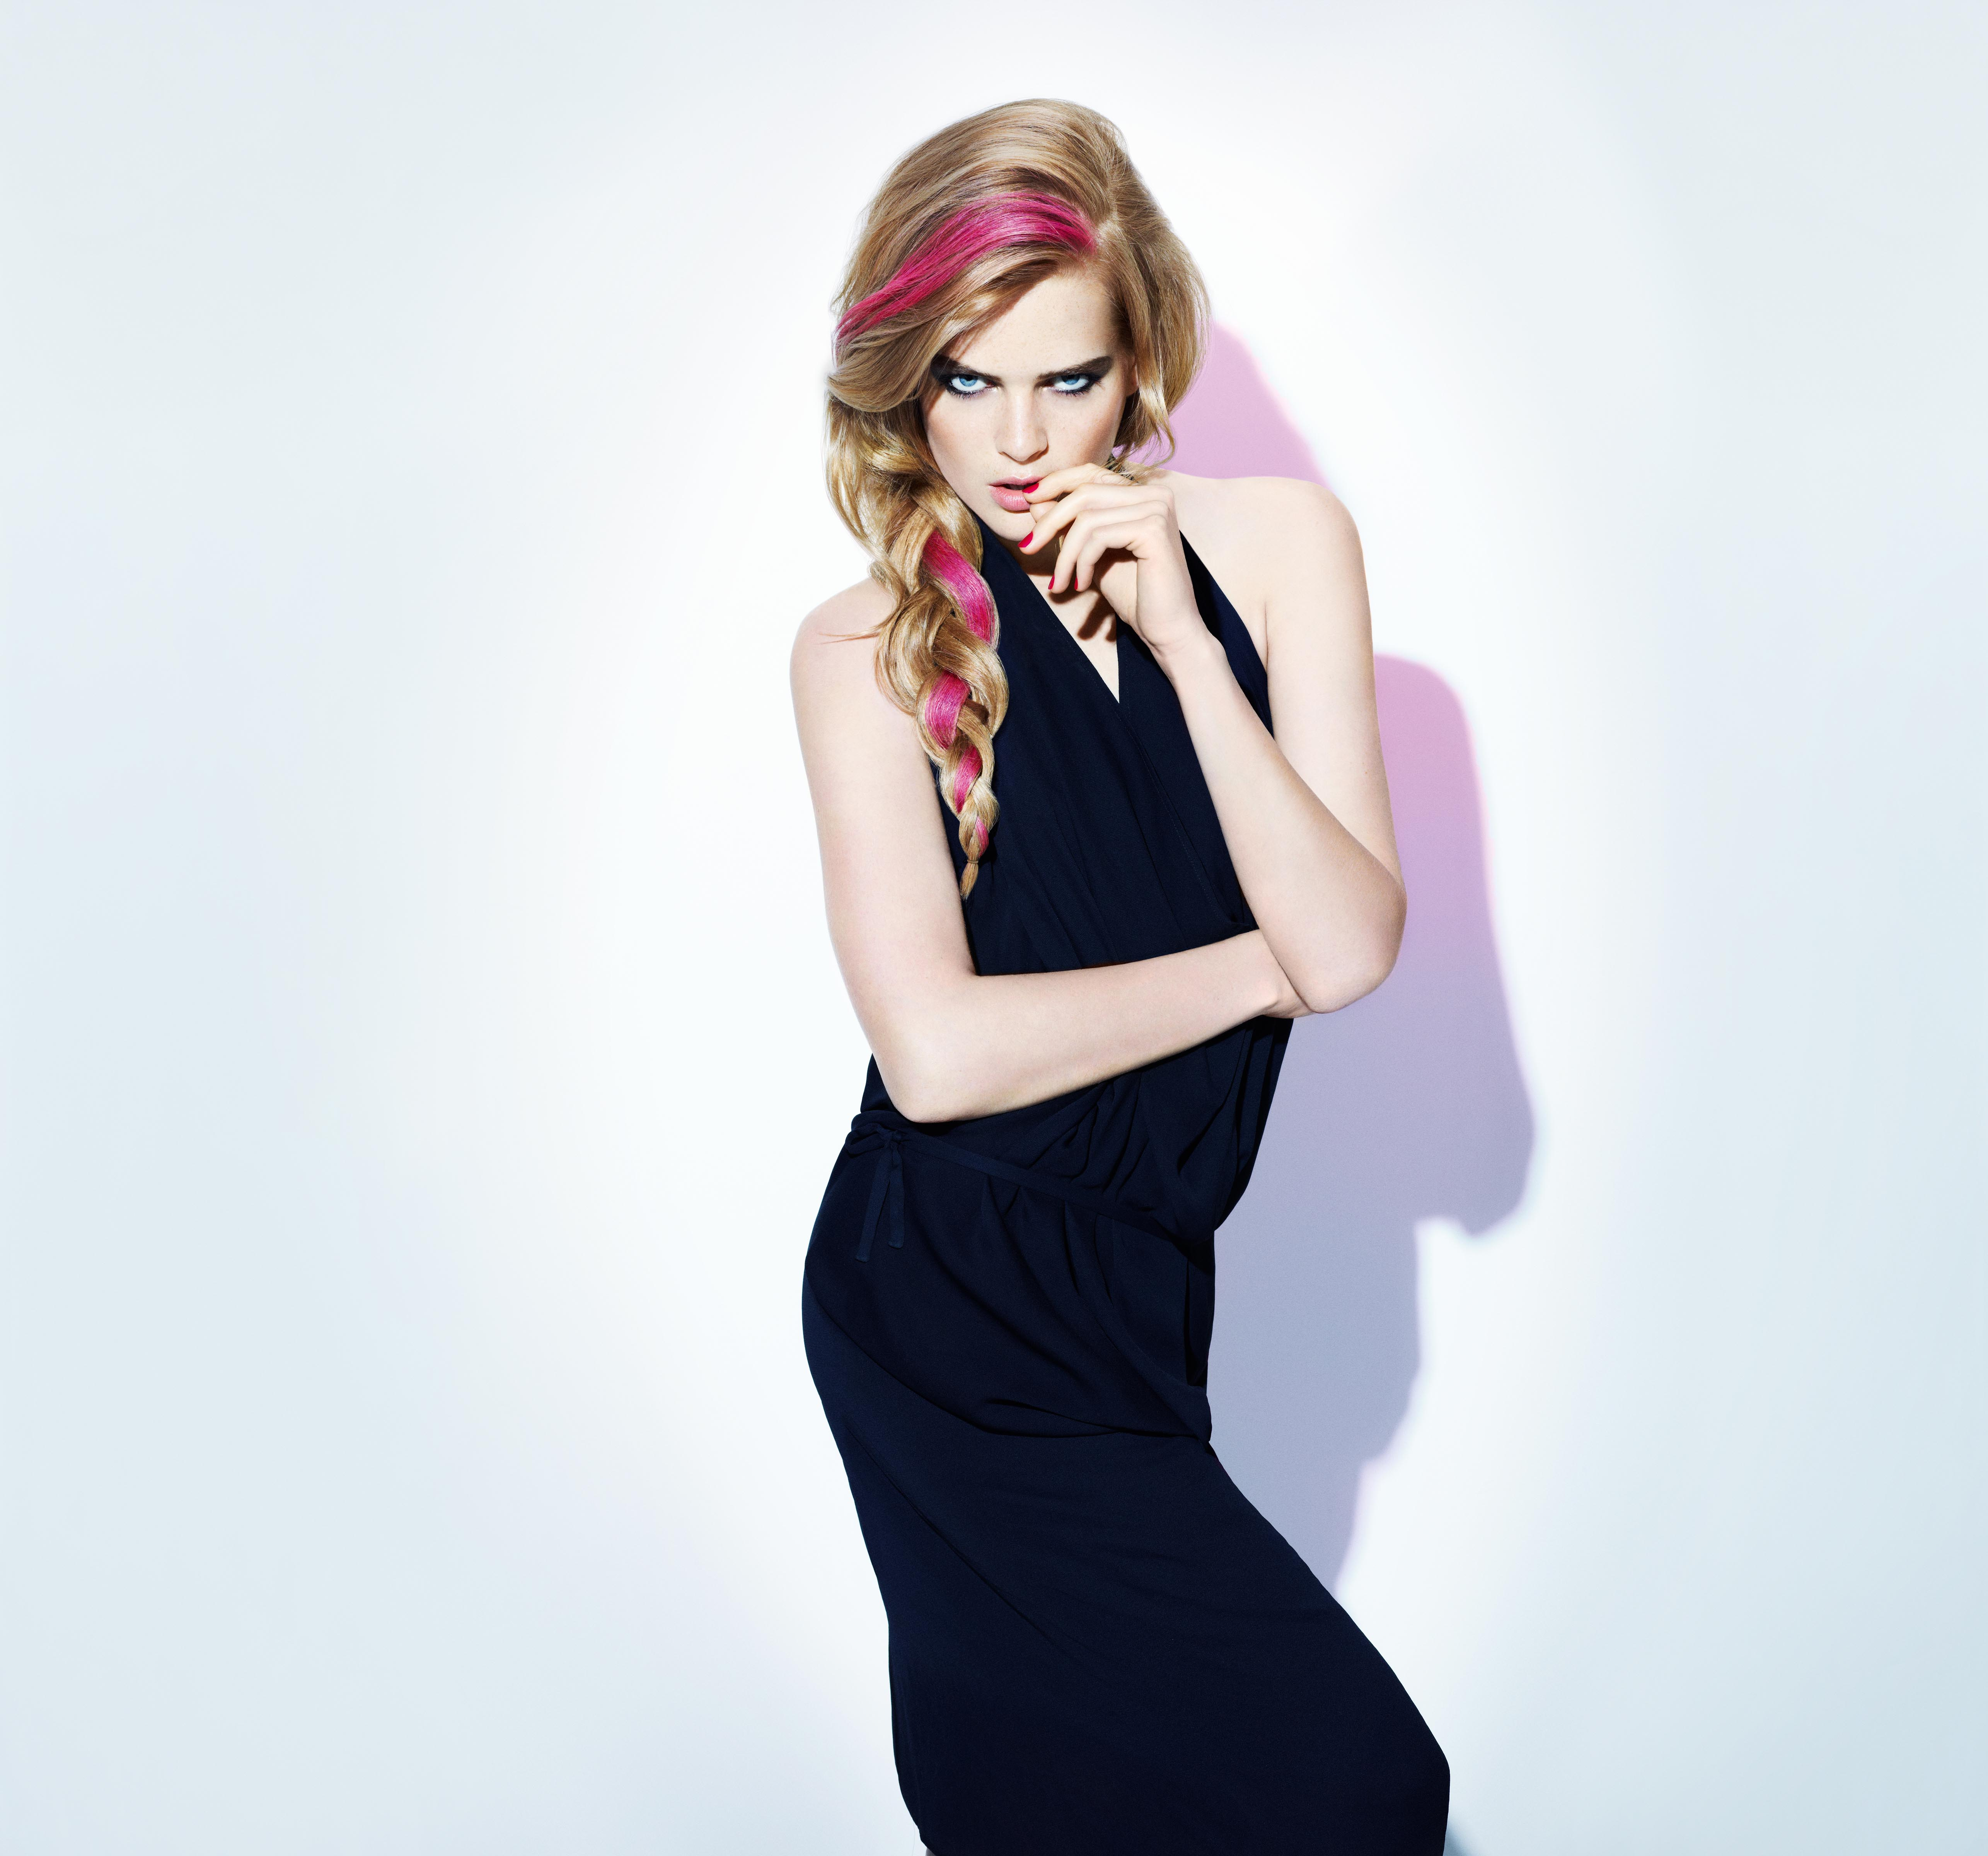 Hairchalk Temporary Hair Color Fashion For Friday Ask The Pro Stylist